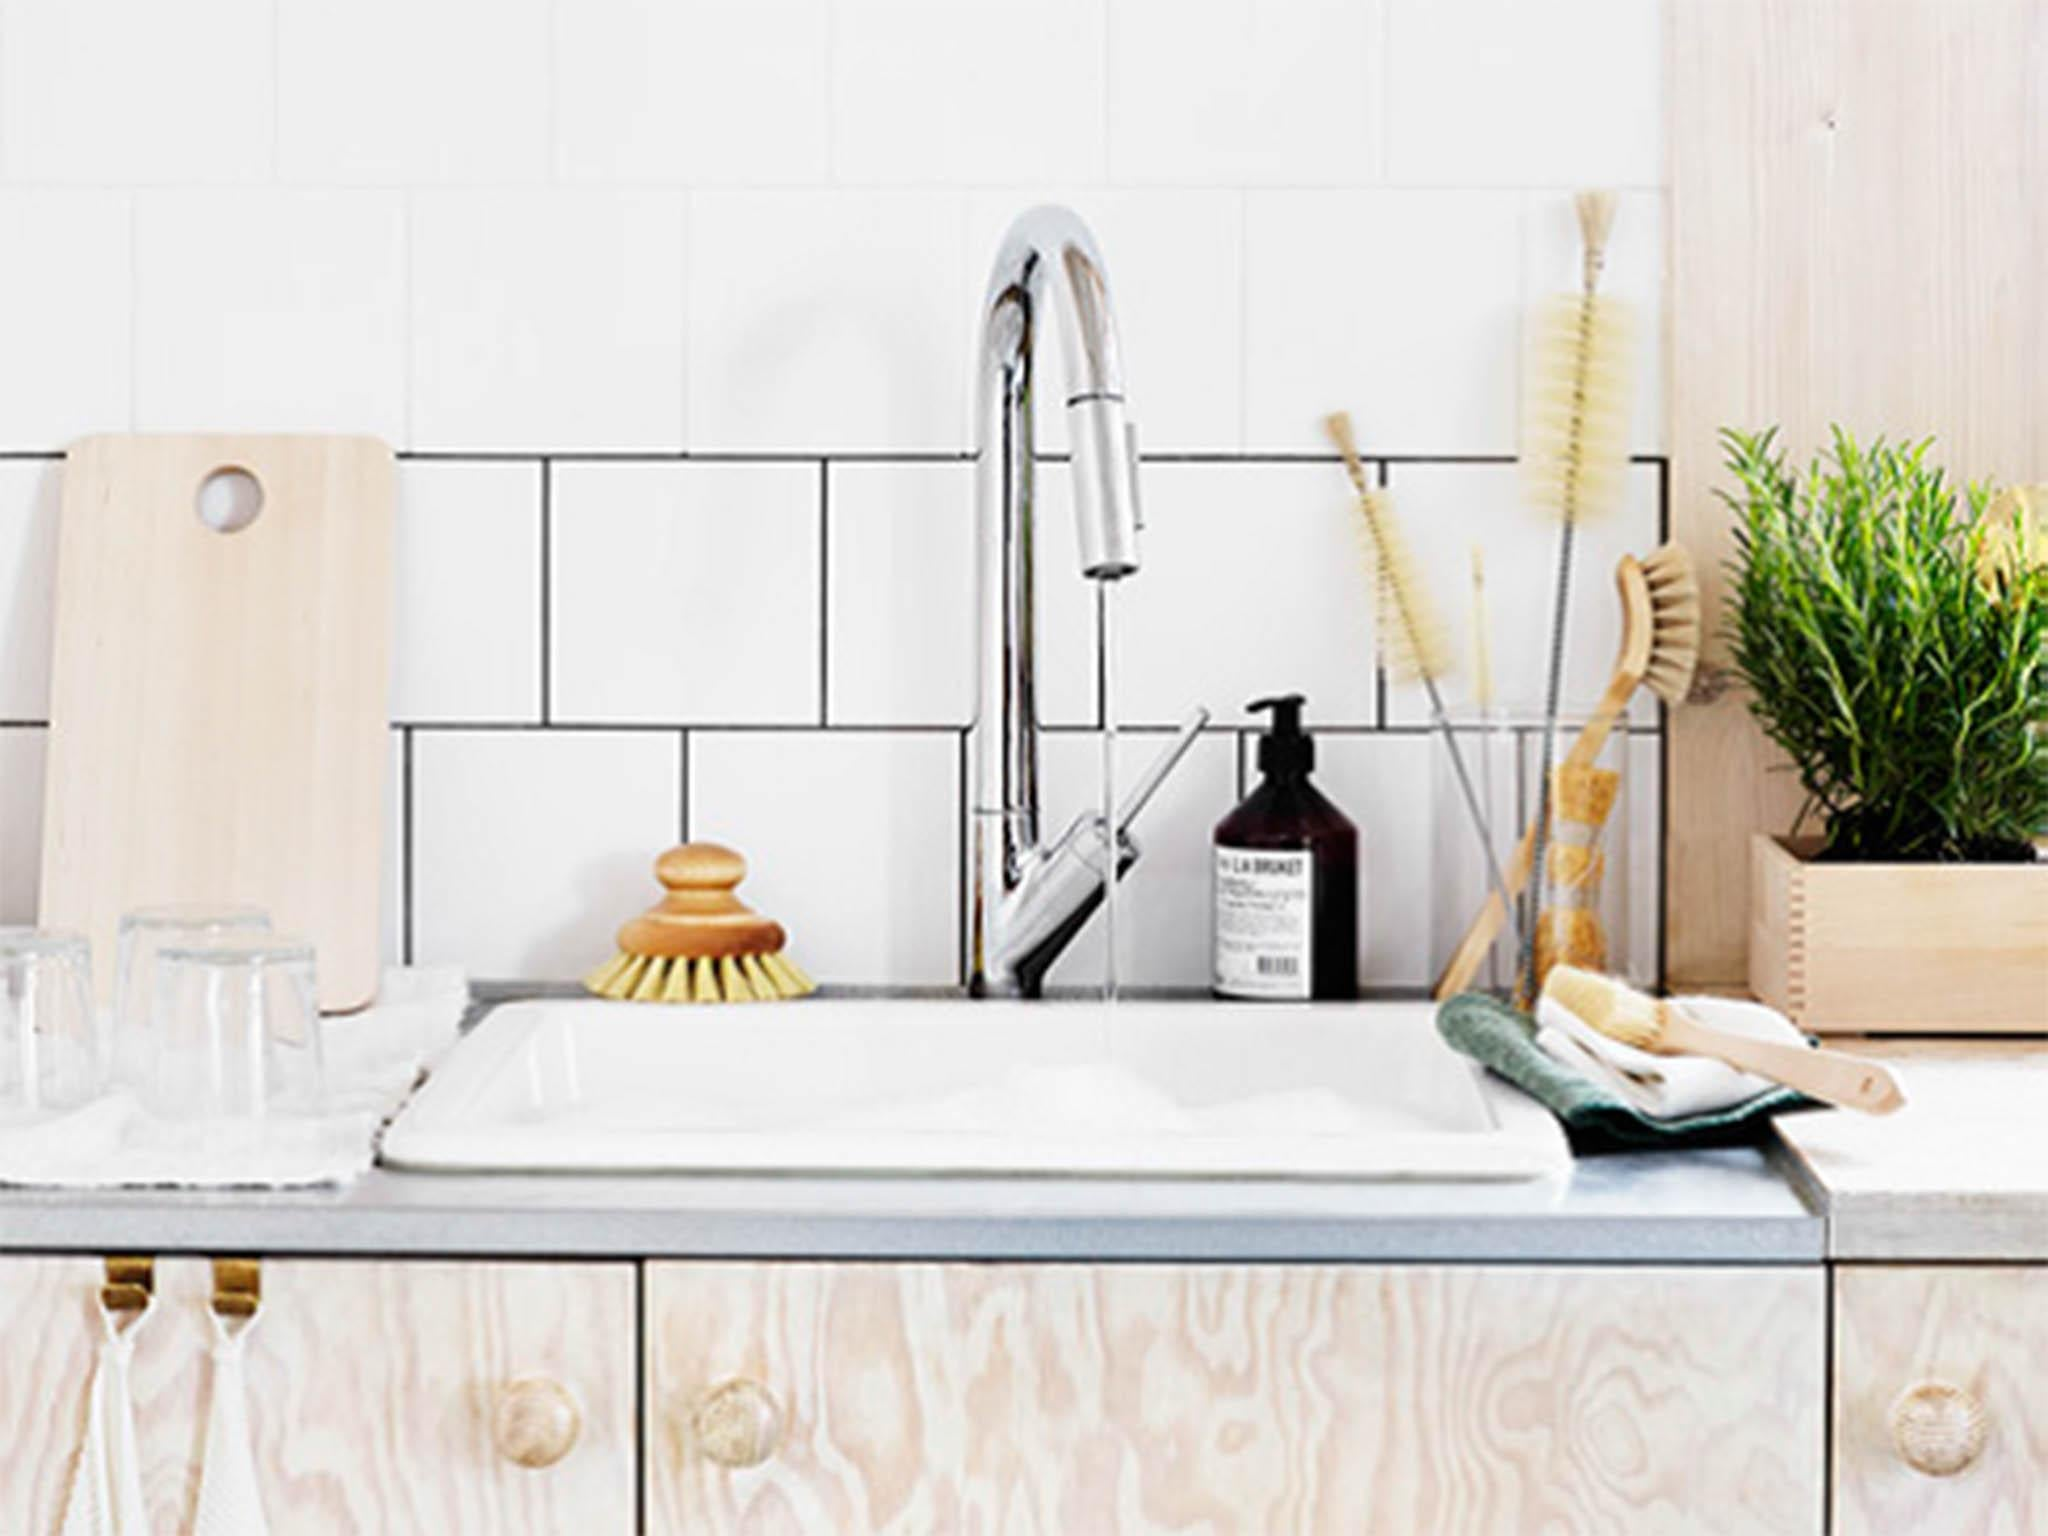 How to scrub up well in the kitchen | The Independent